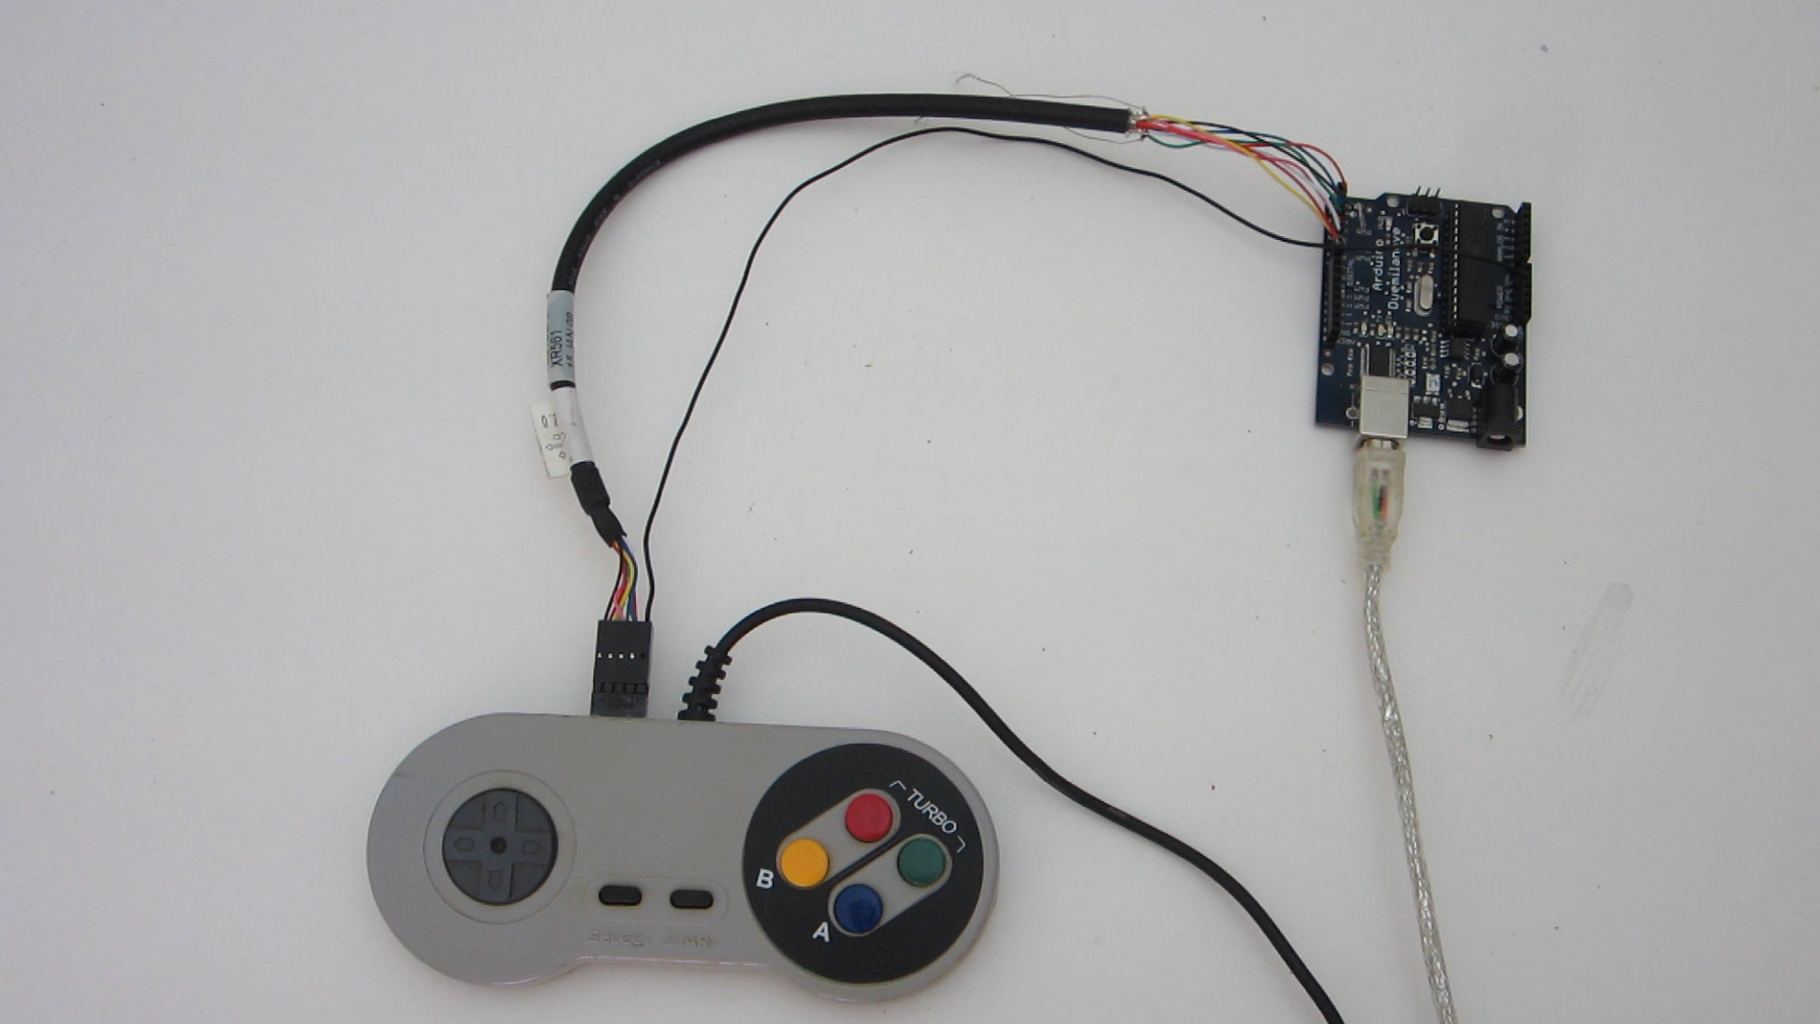 Attach the Wires of the Second Cable to the Arduino